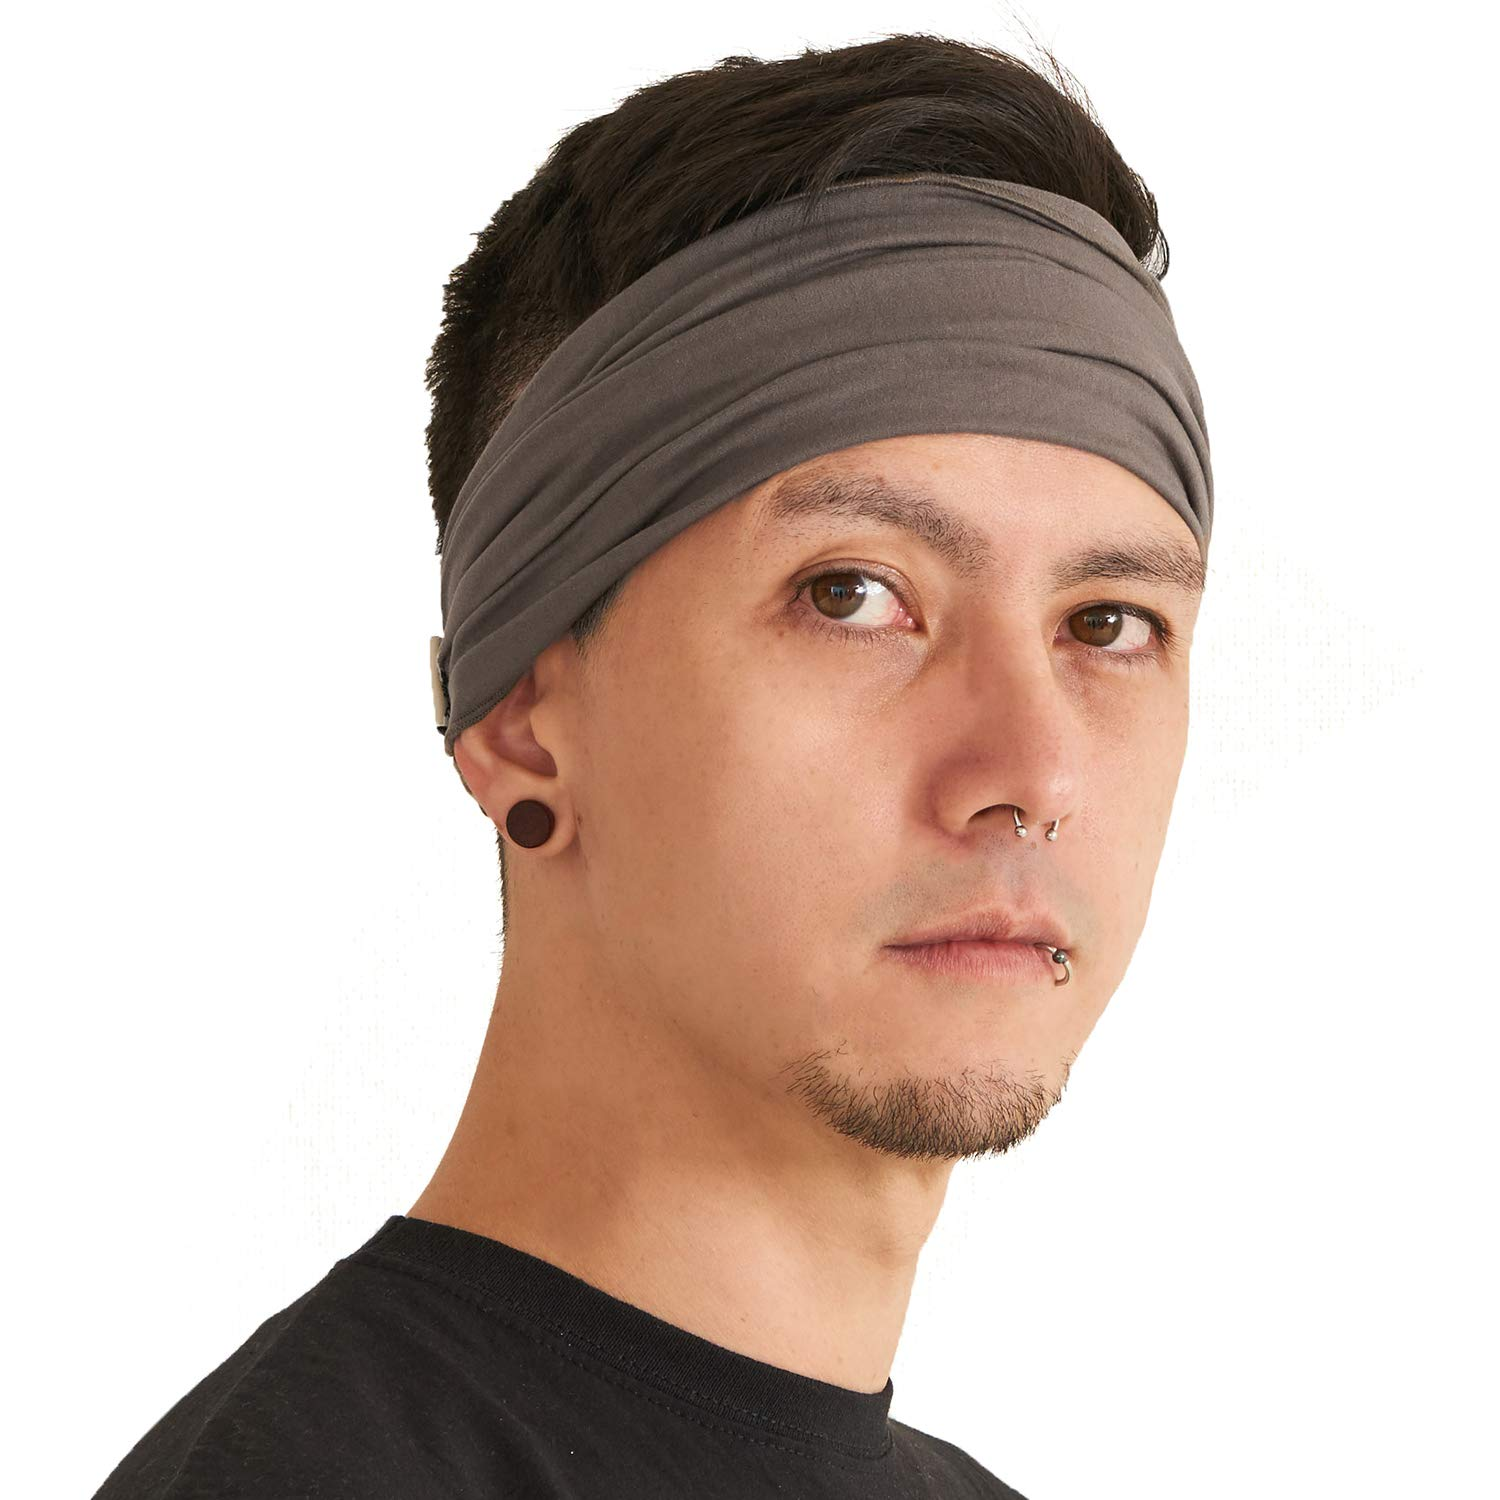 CHARM Charcoal Gray Japanese Bandana Headbands for Men and Women – Comfortable Head Bands with Elastic for a Secure Snug Fit Ideal for Runners Fitness Sports Football Tennis Stylish Lightweight L by CCHARM (Image #1)